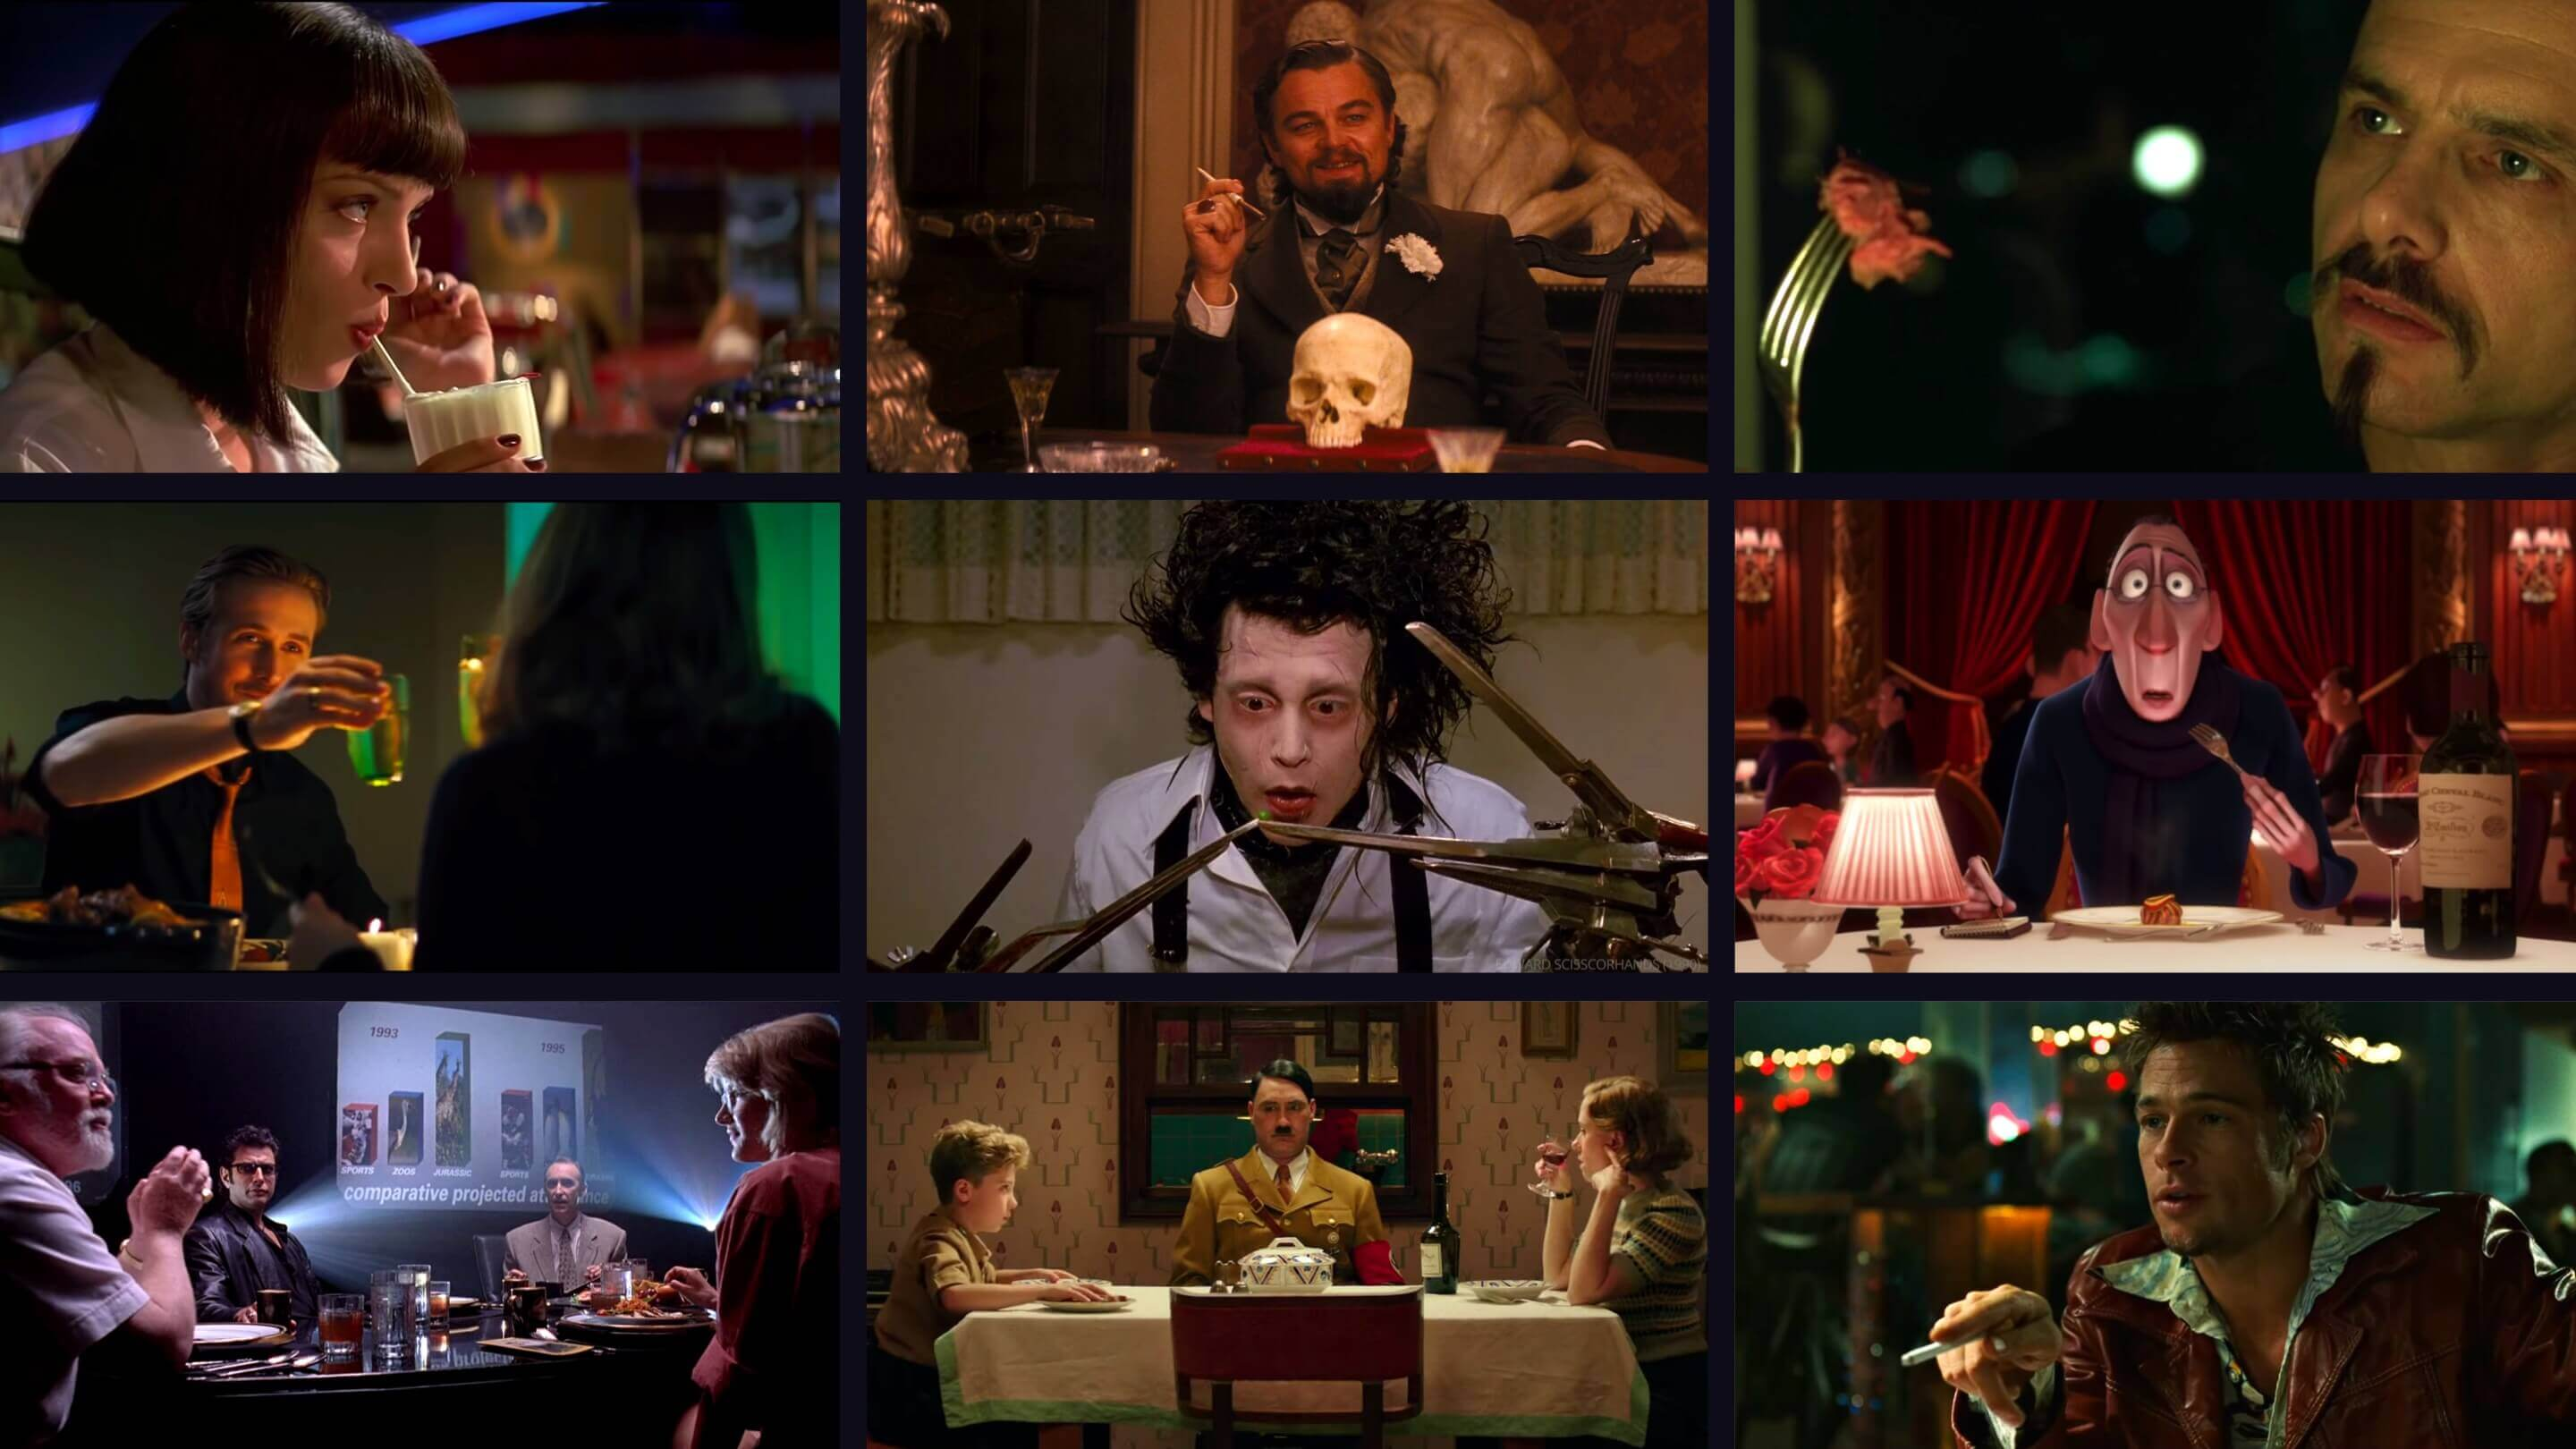 Best Dinner Scenes in Movie HIstory - Cinematic Dinner Scenes and Table Scenes